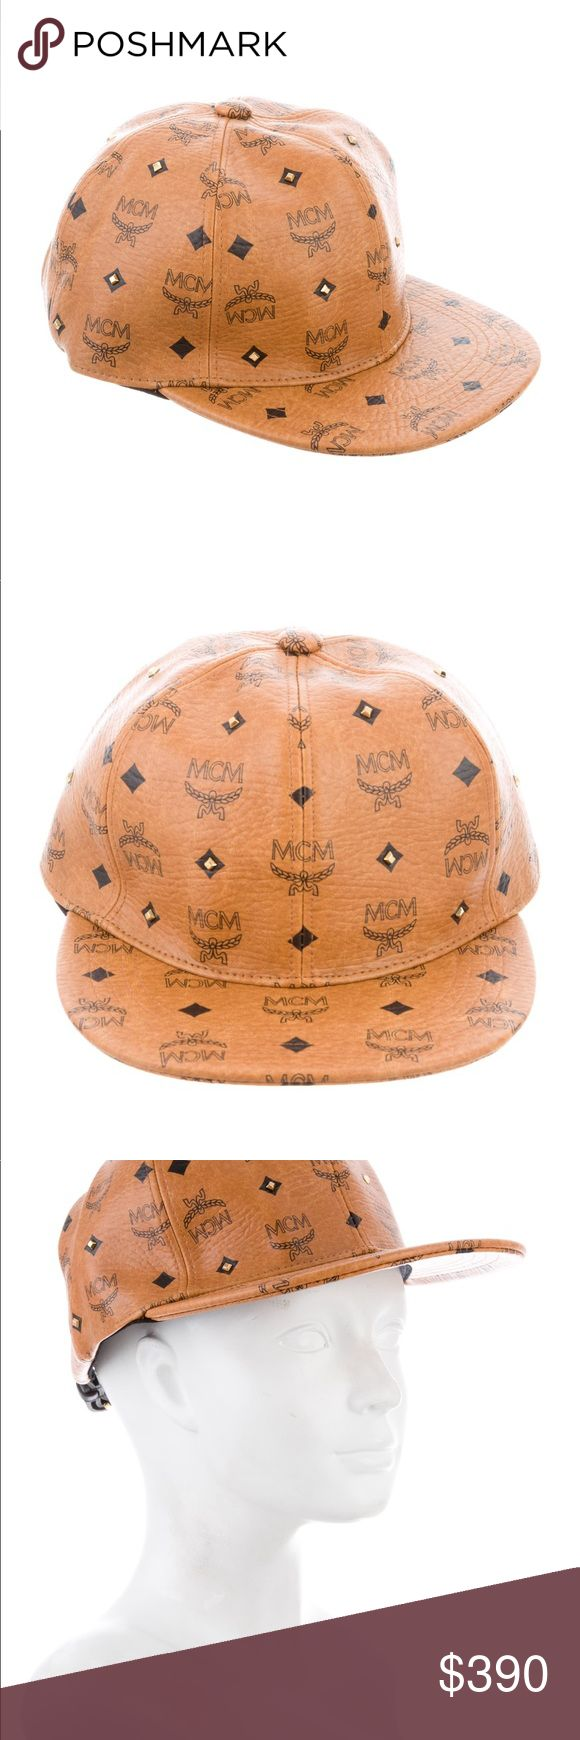 b784869f1322f ... real mcm hat leather mens cognac and black visetos leather mcm cap with  gold tone hardware